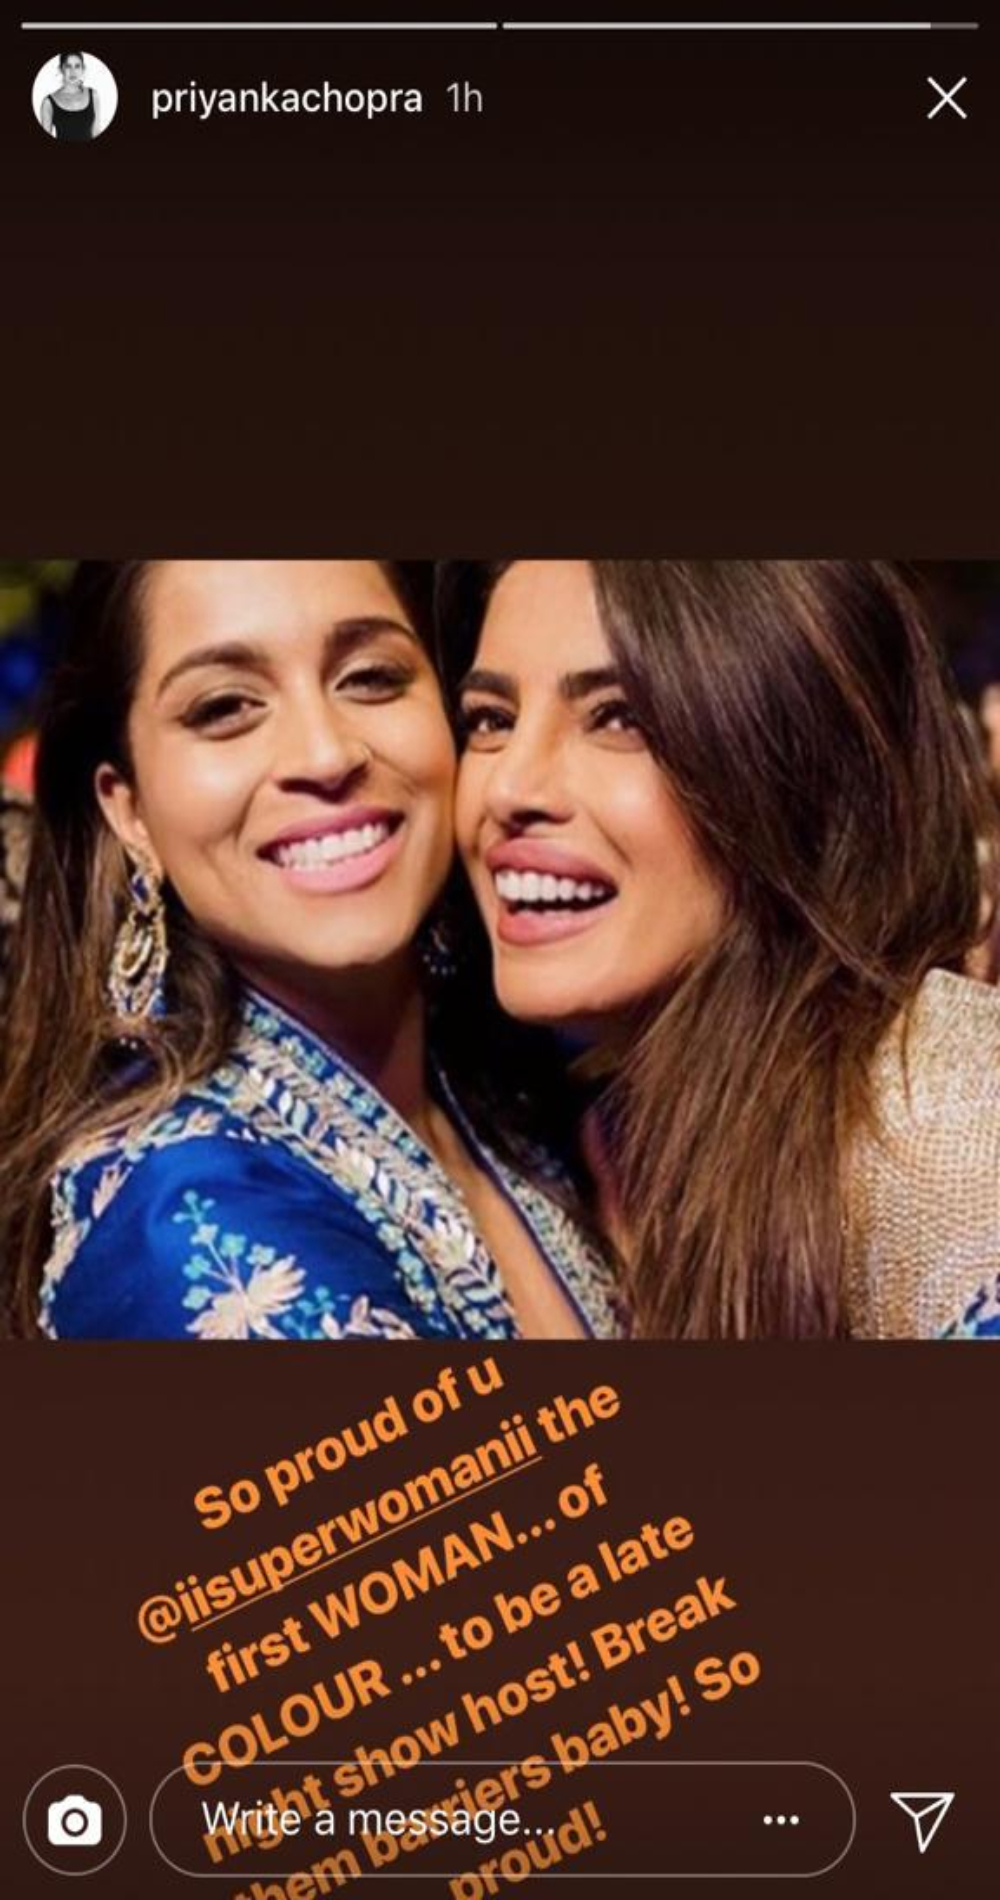 Priyanka Chopra posts a special message for Lilly Singh.